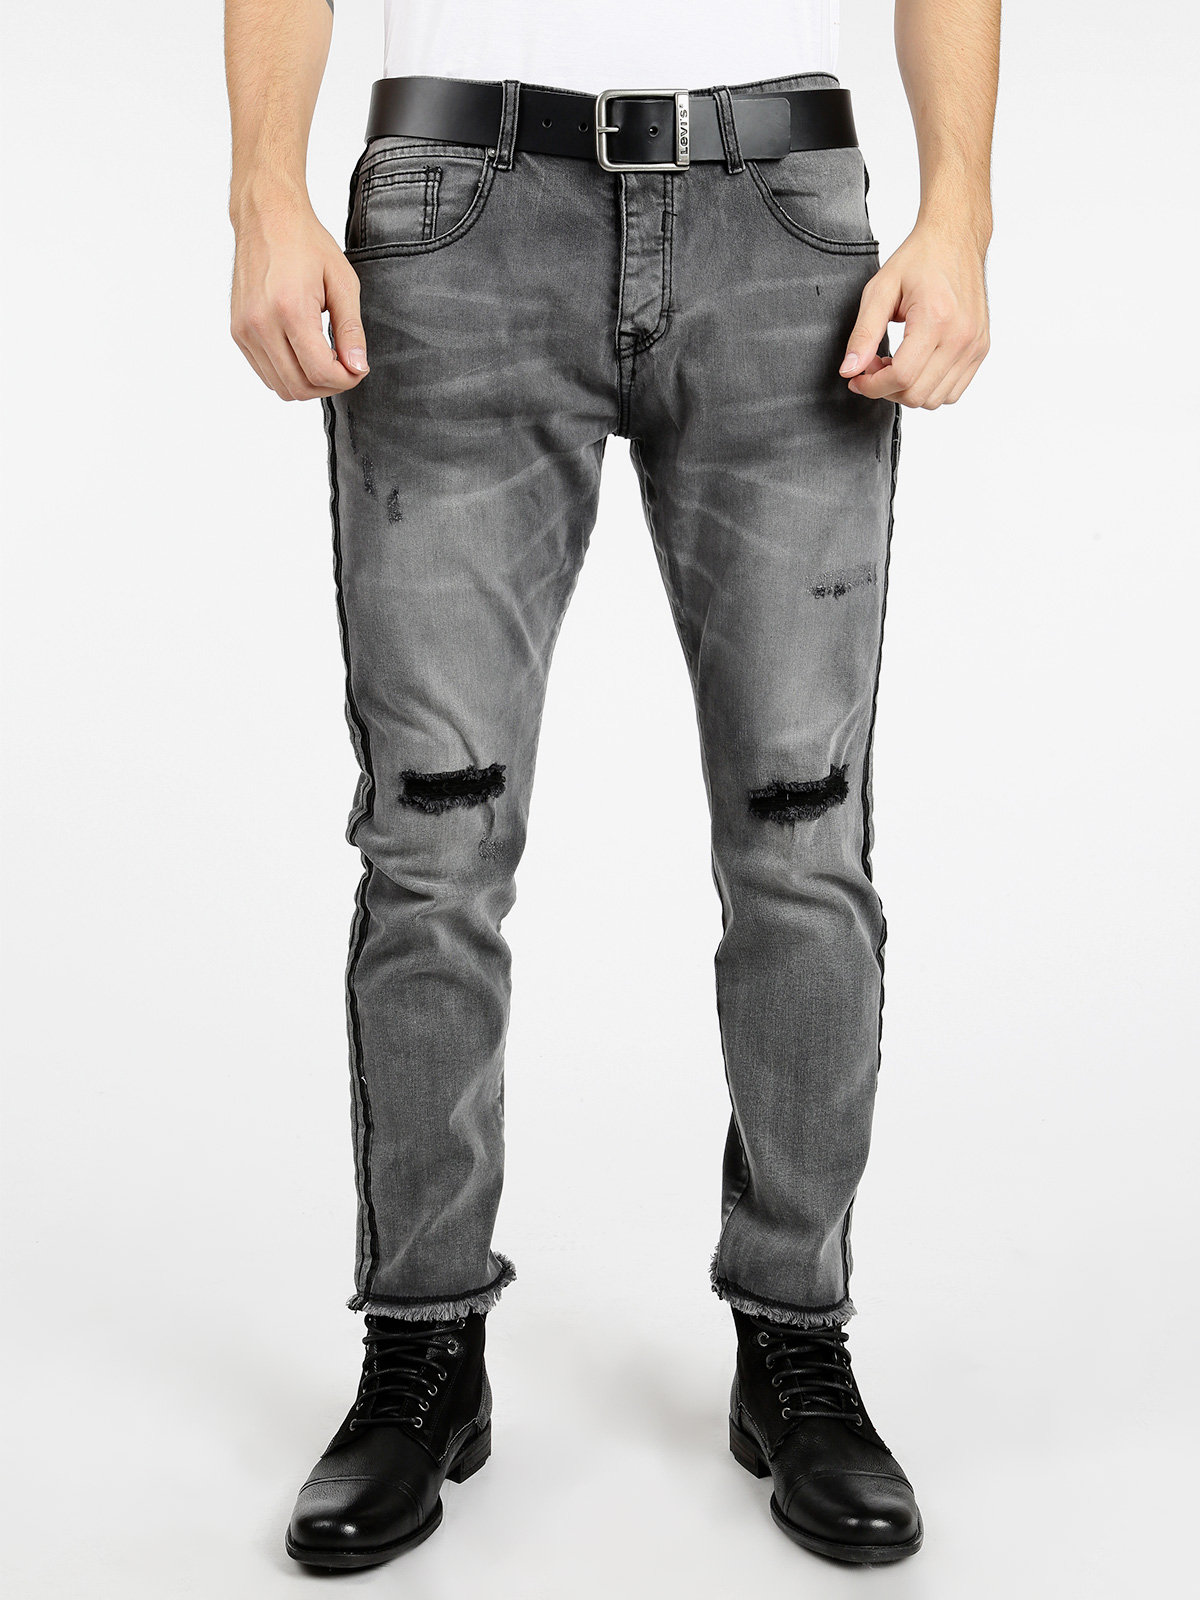 Gray Jeans With Tear